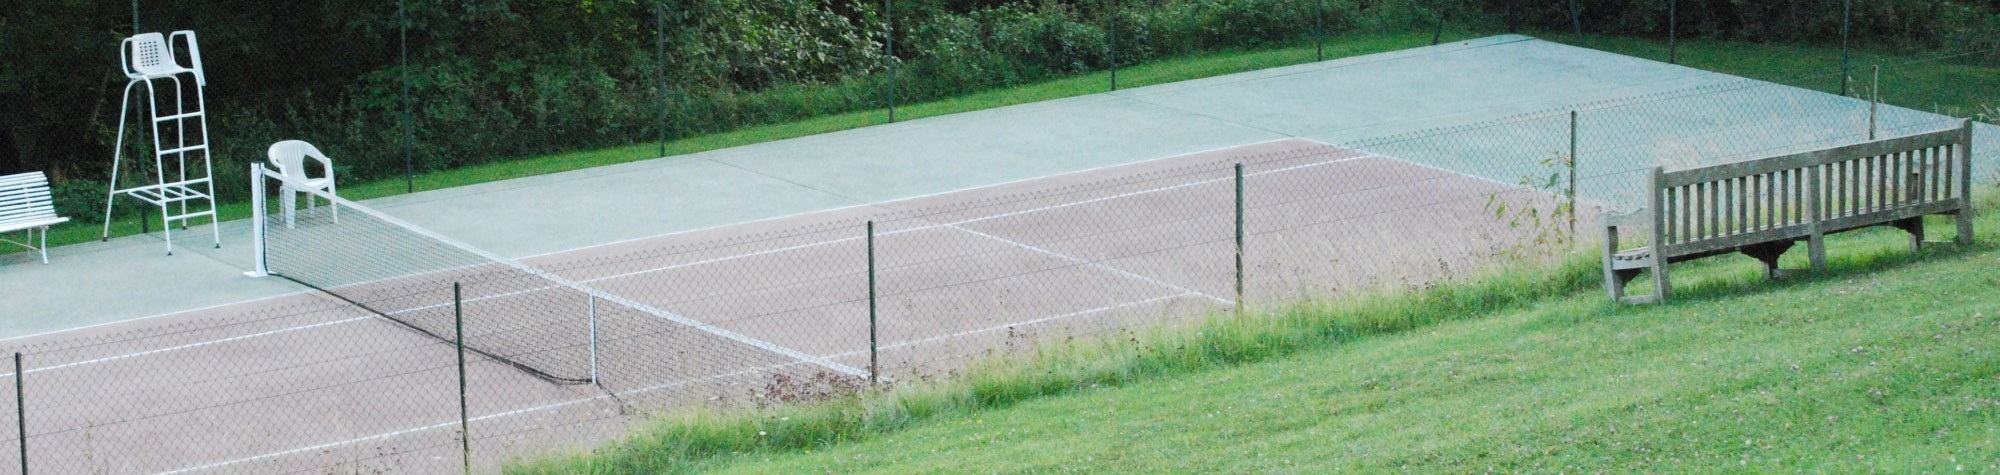 Chambres-Hotes-Hautes-Sources-Tennis-width